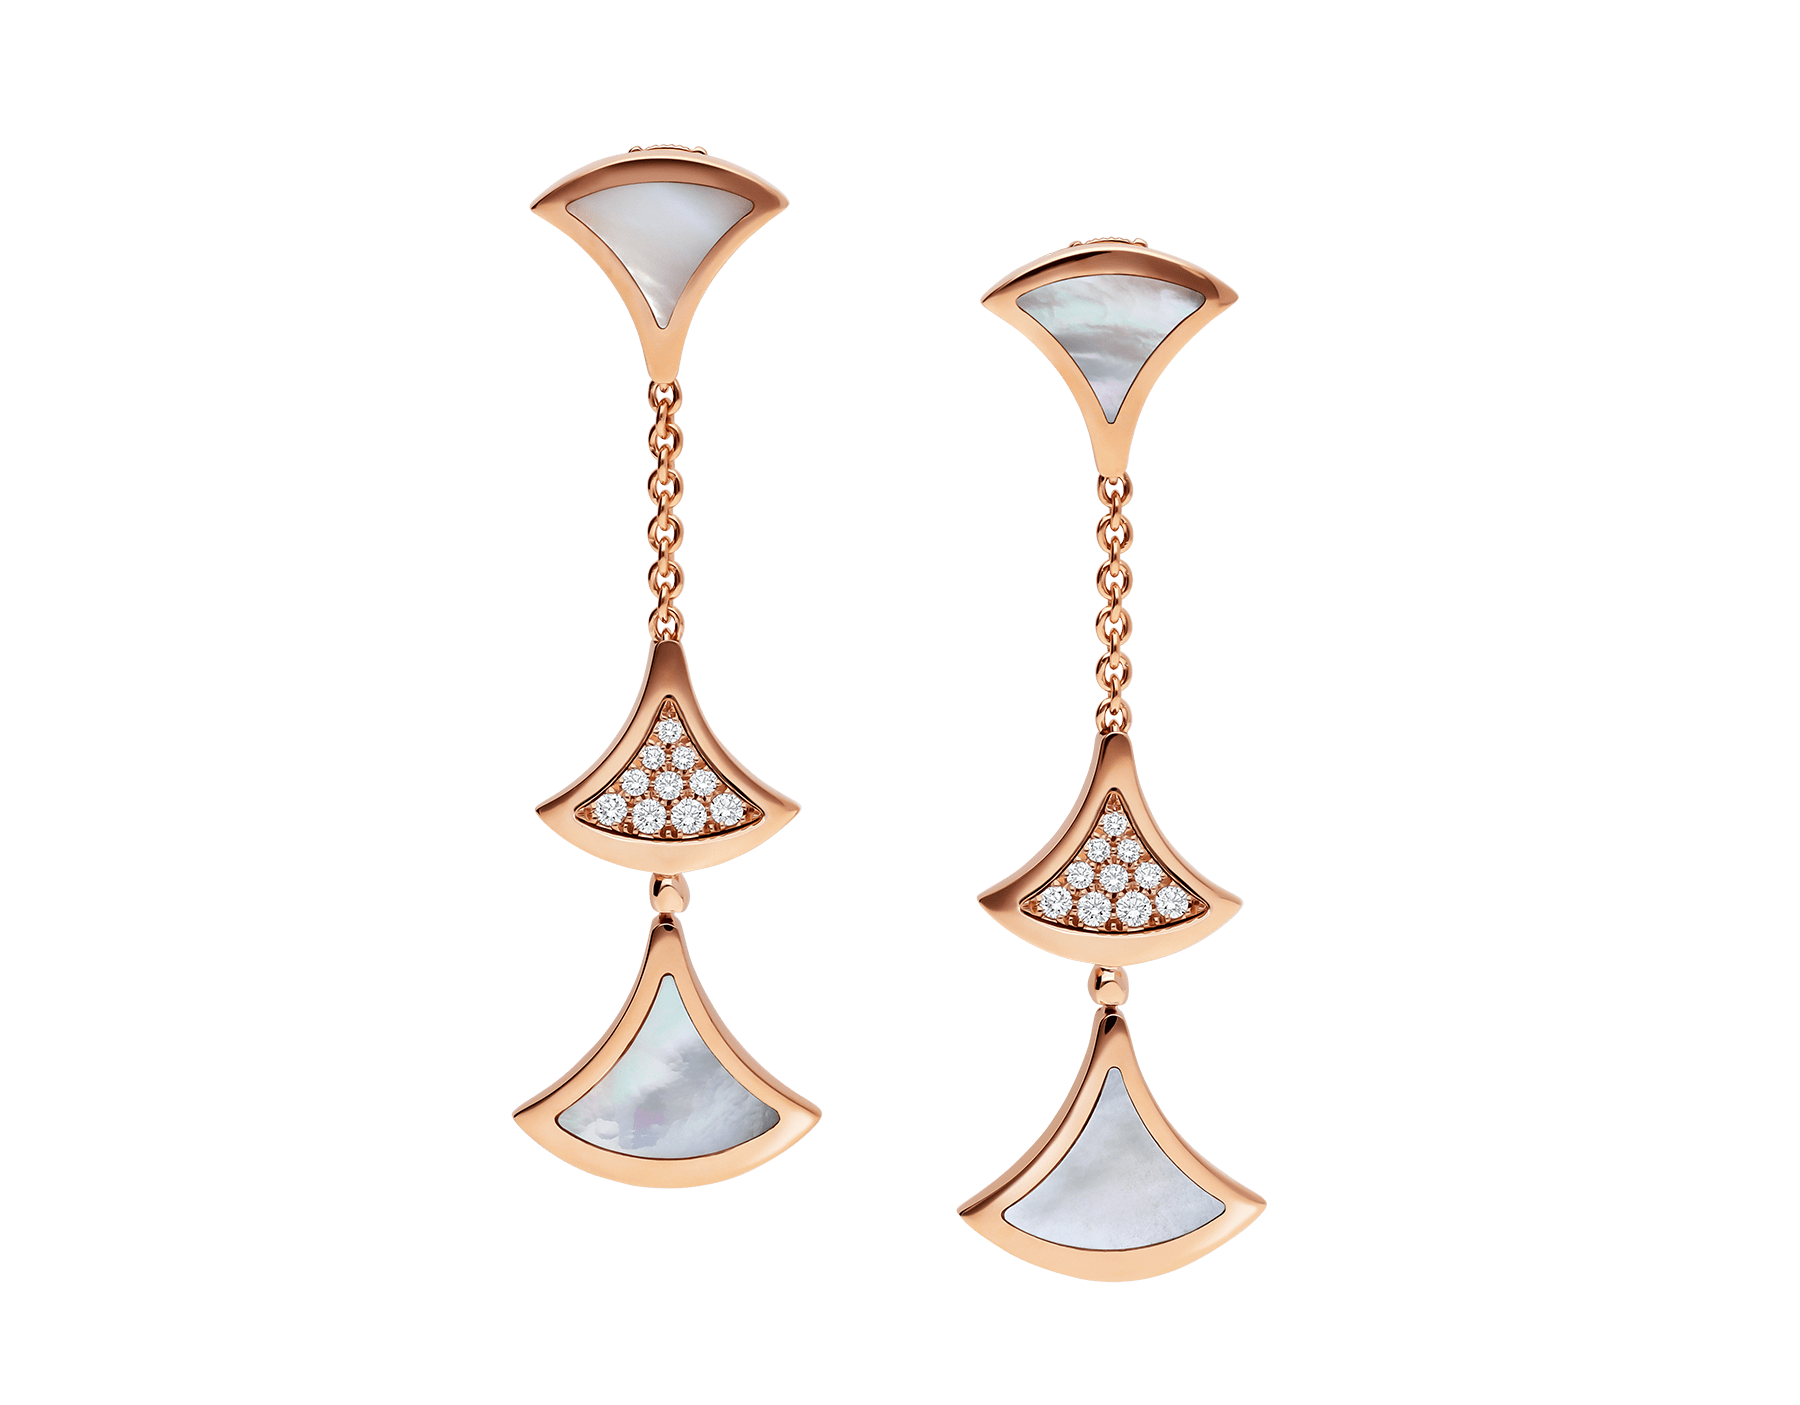 DIVAS' DREAM earrings in 18 kt rose gold, set with mother-of-pearl elements and pavé diamonds. 352603 image 1